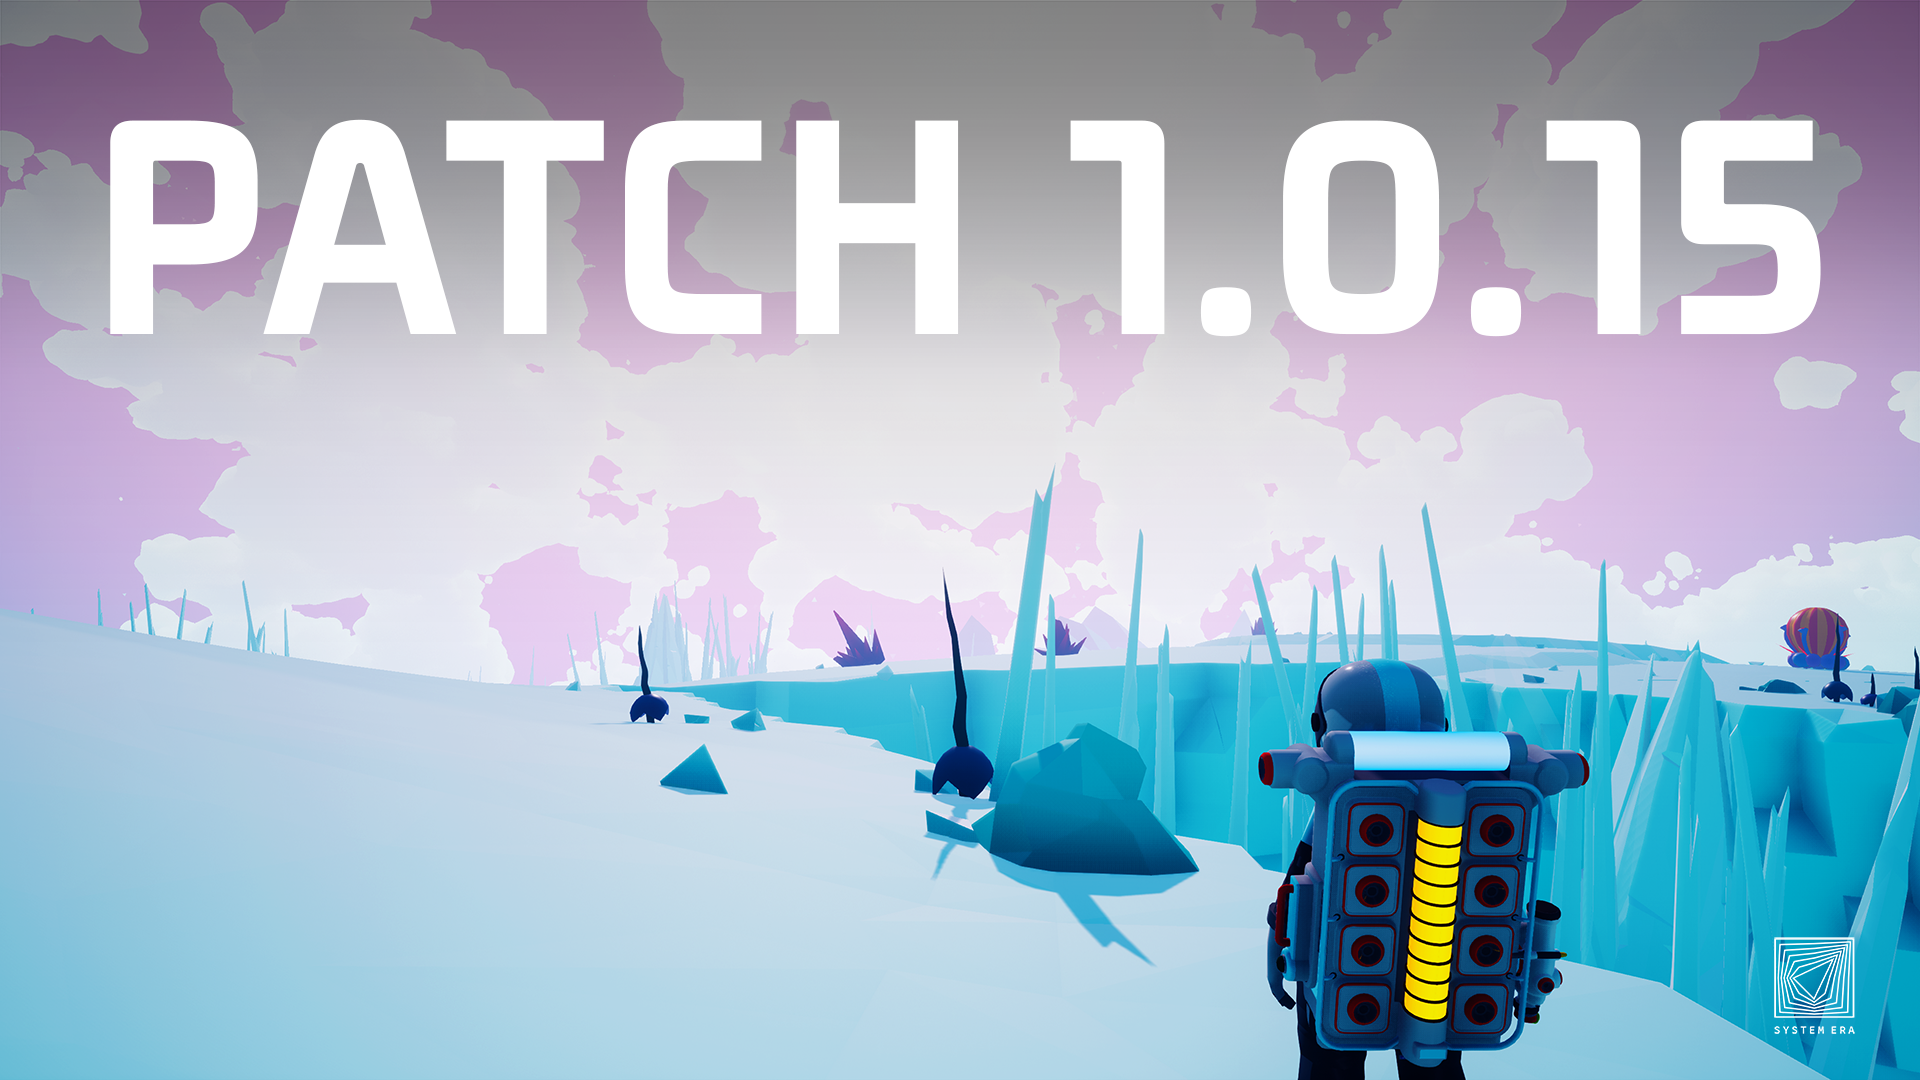 Patch 1.0.15.png